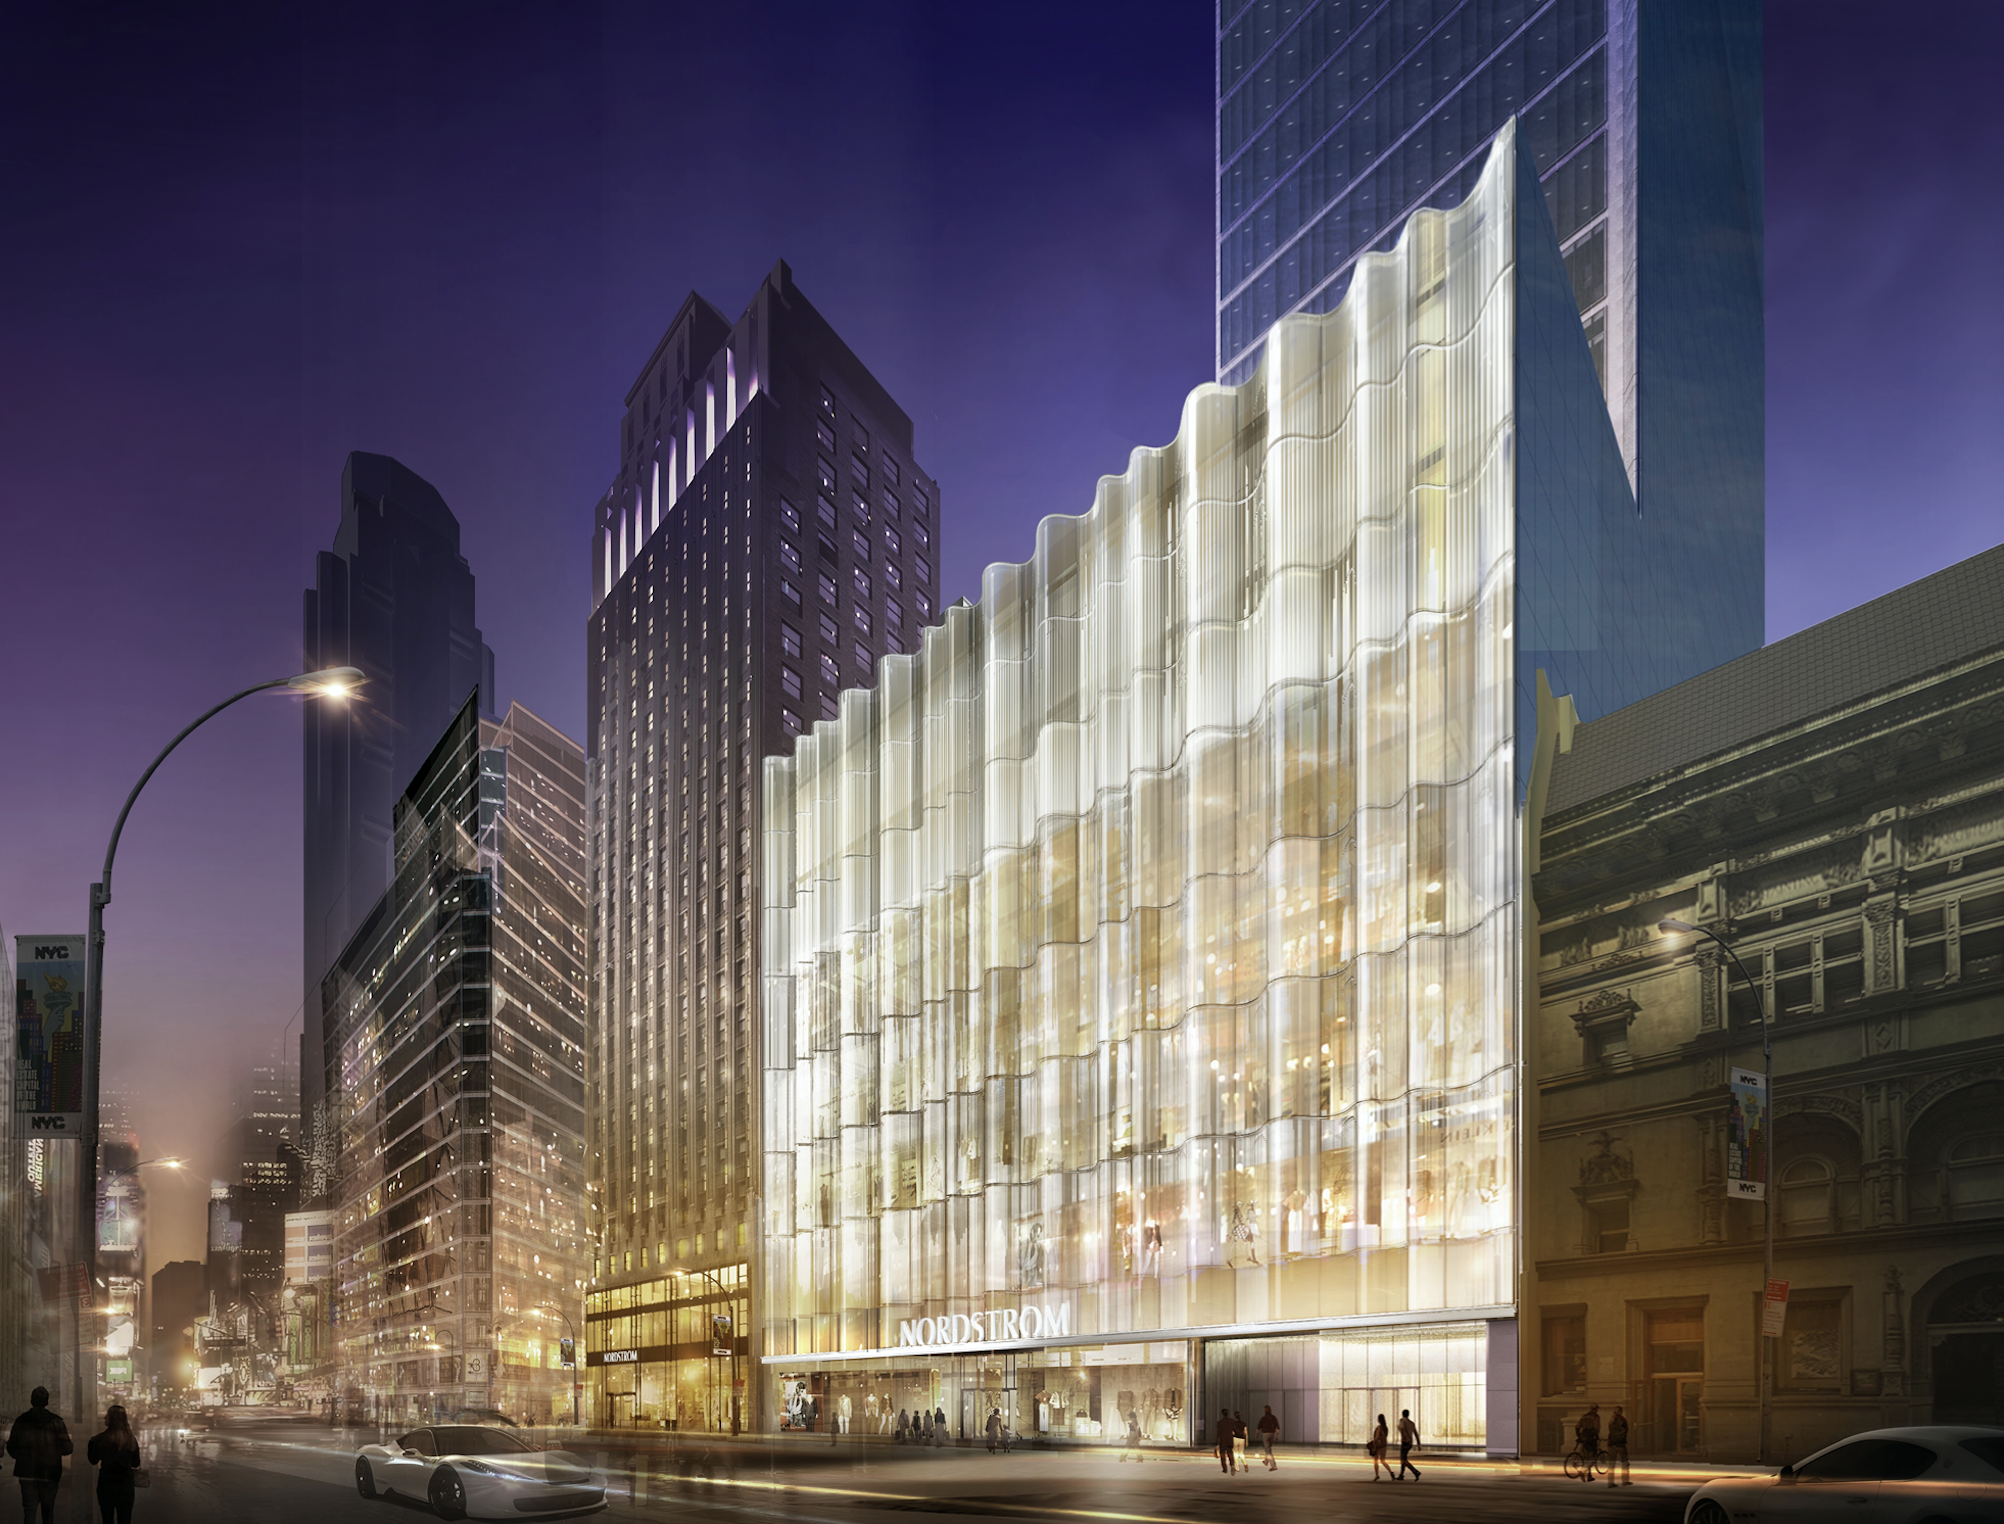 Nordstrom Manhattan Flagship W57th Glass Waveforms at Night, all rendering via Nordstrom